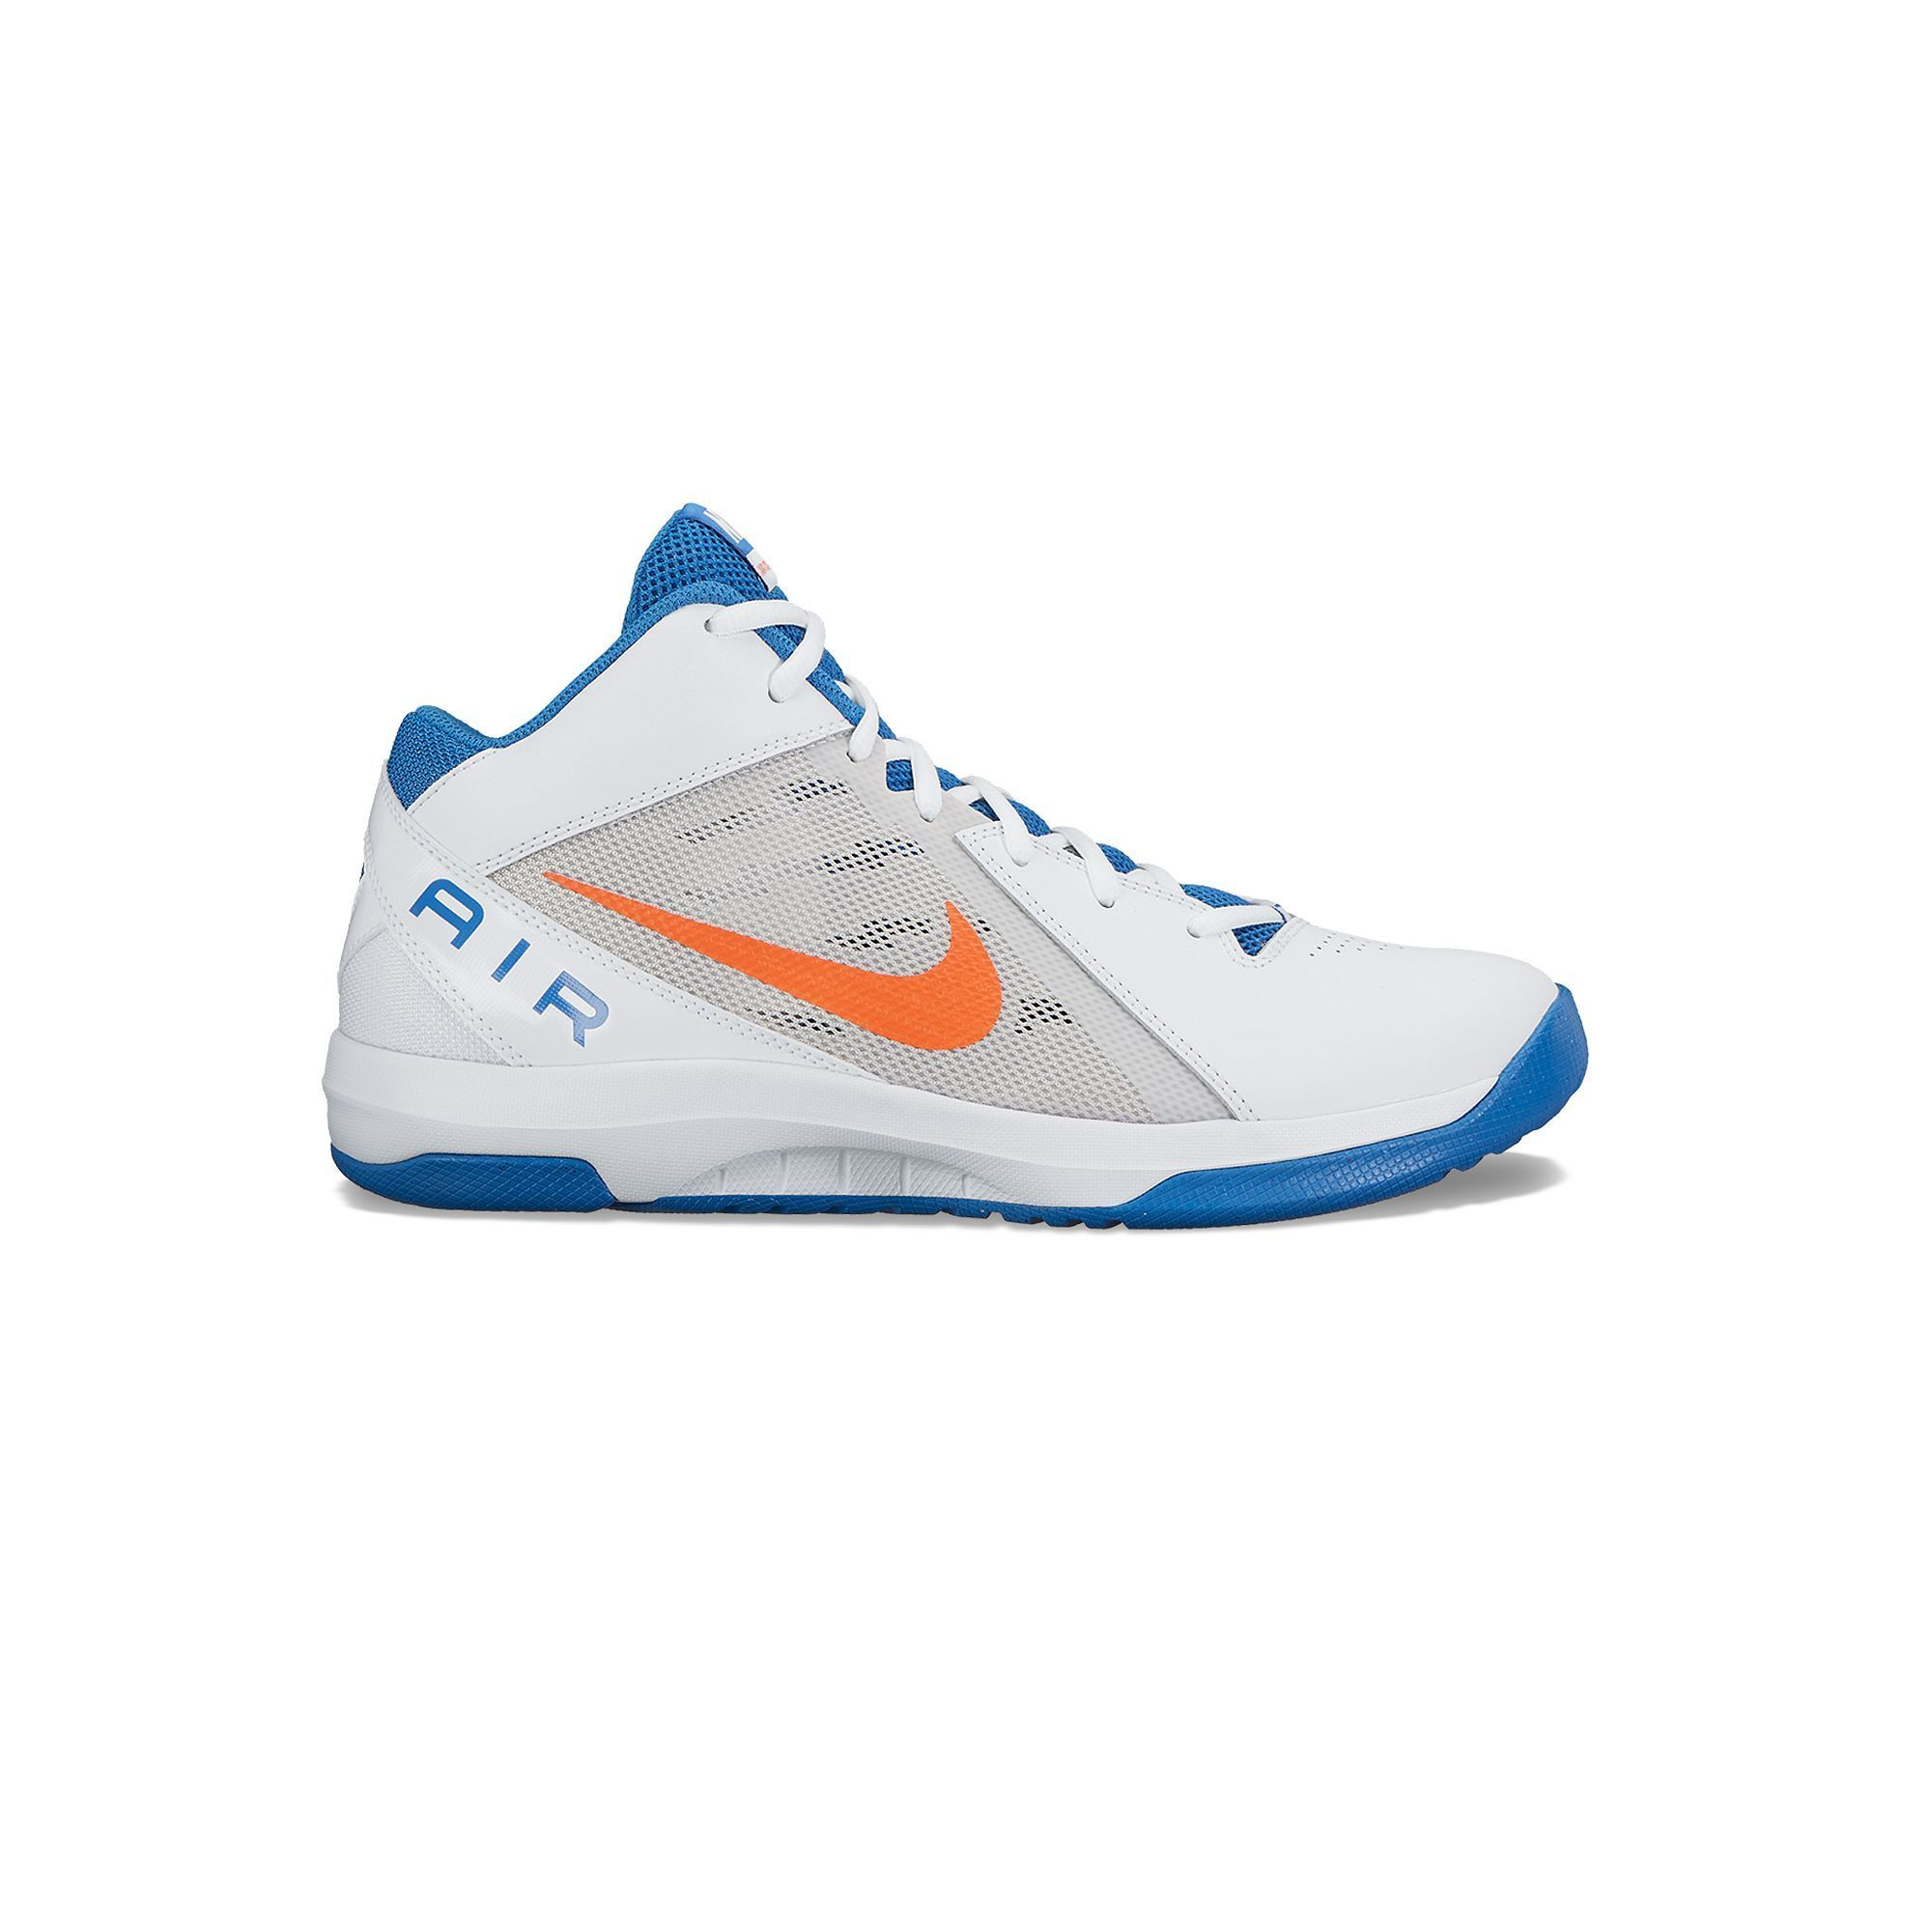 Nike The Air Overplay IX Men's Basketball Shoes, Size: 14, Natural